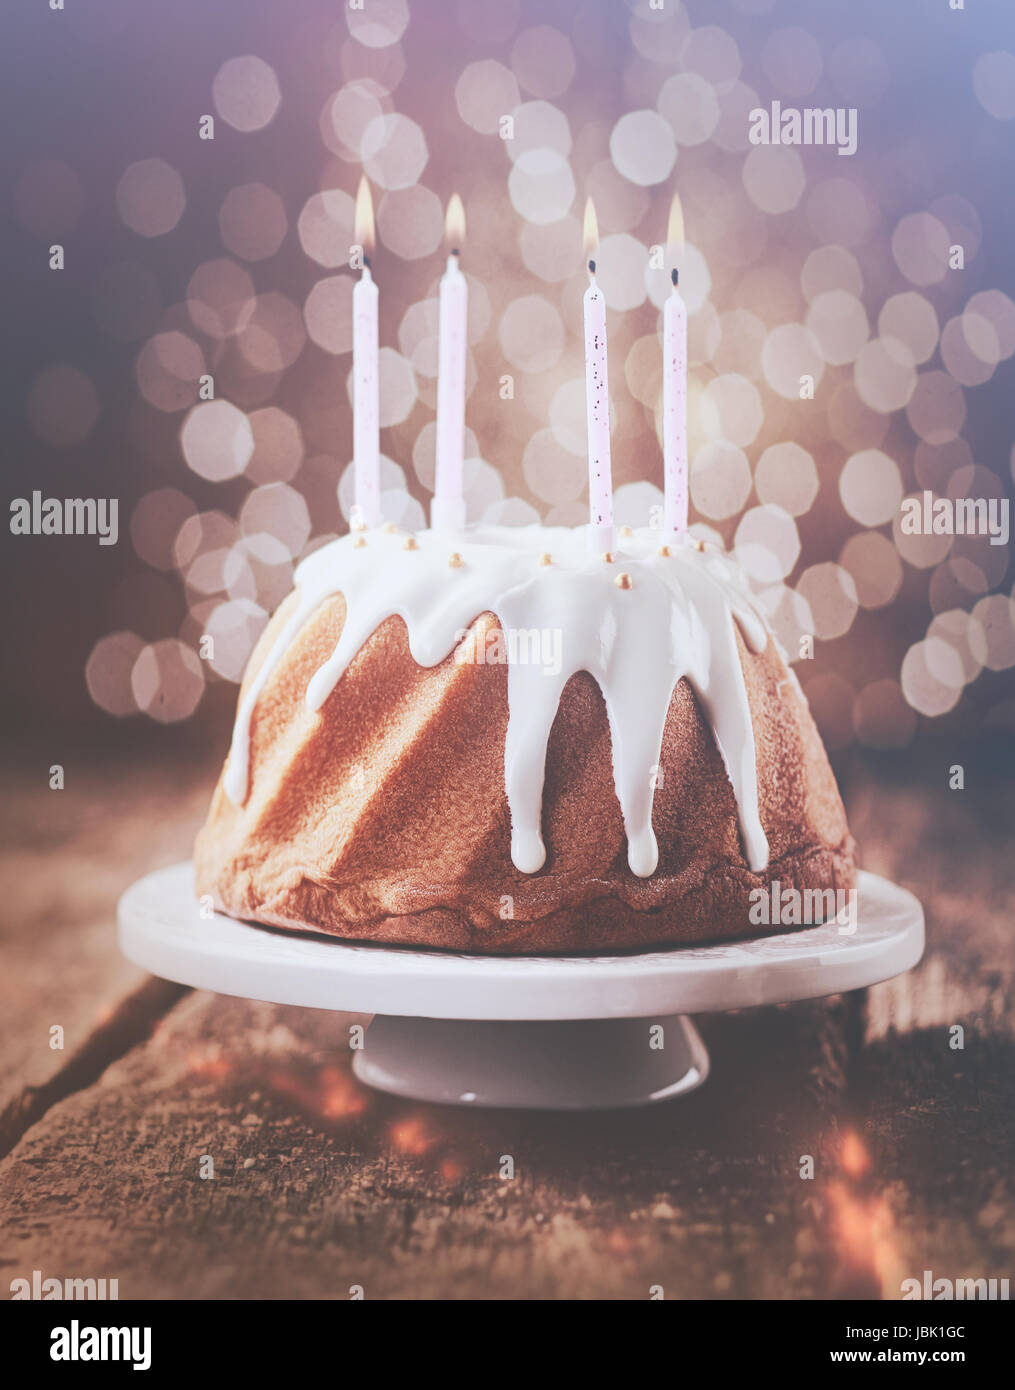 Remarkable Retro Vintage Effect Birthday Cake Glazed With Dripping White Funny Birthday Cards Online Aboleapandamsfinfo